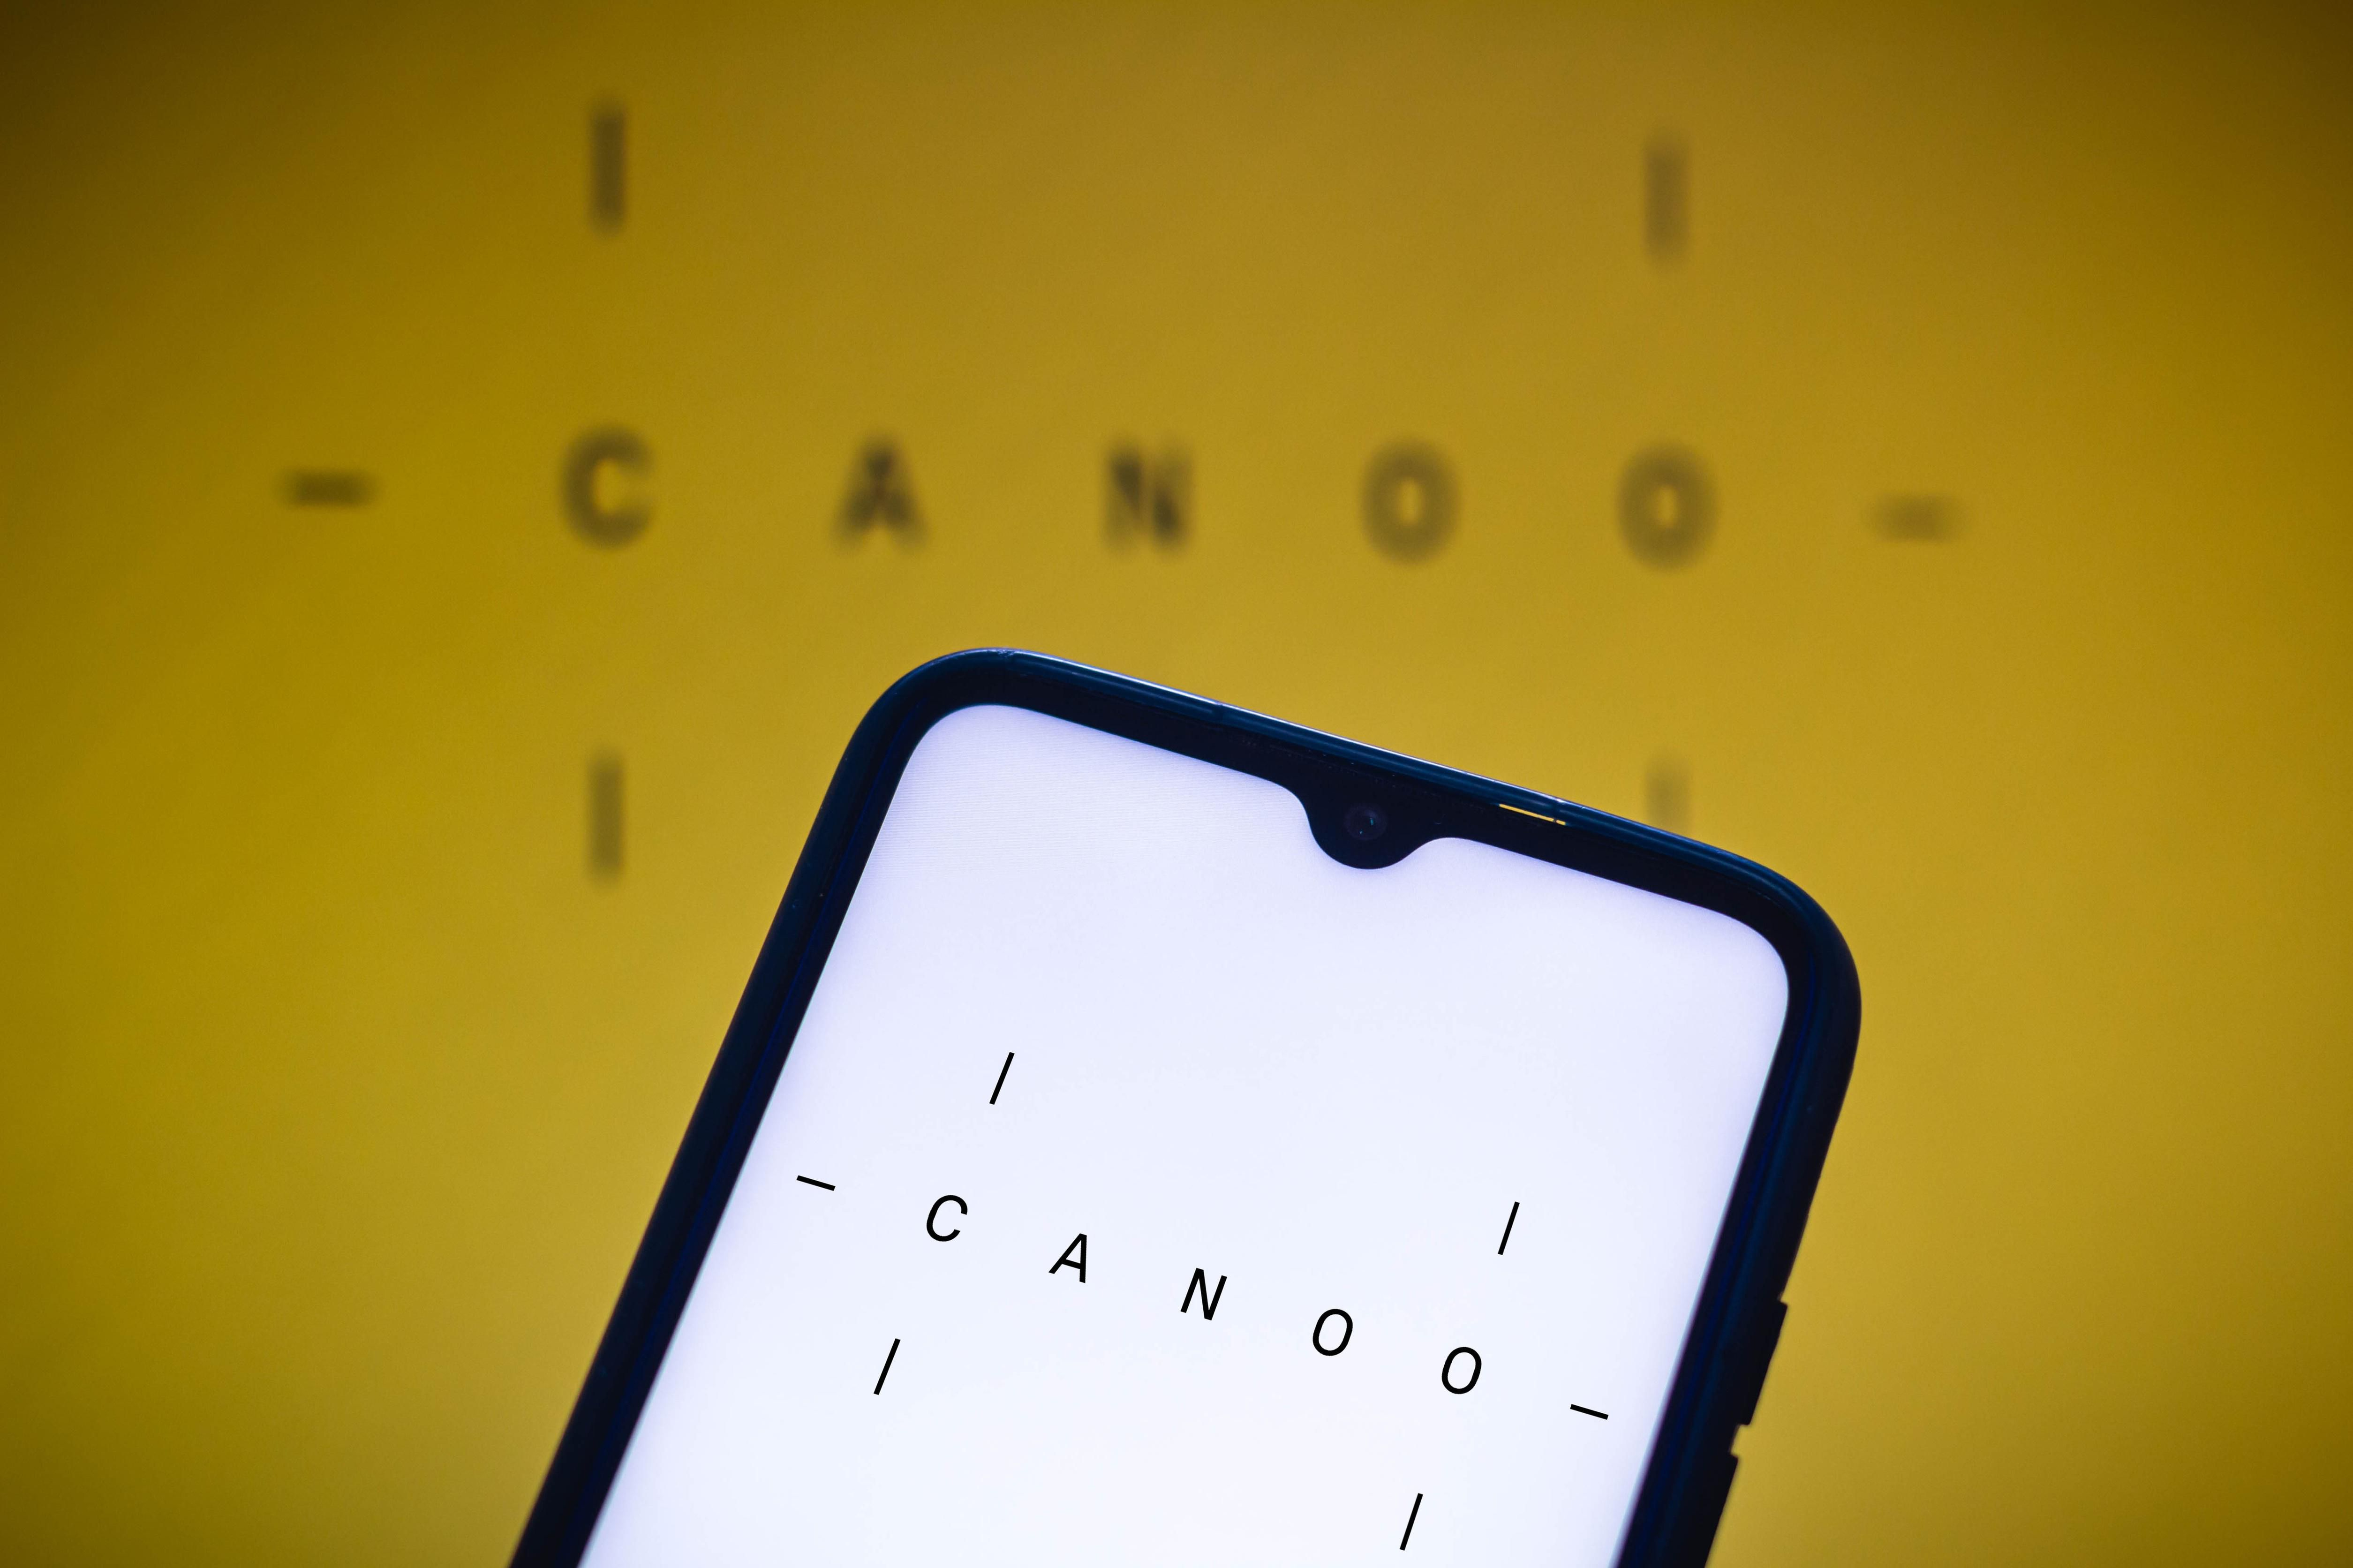 Is Canoo Stock Worth A Look As Reddit Interest Surges?